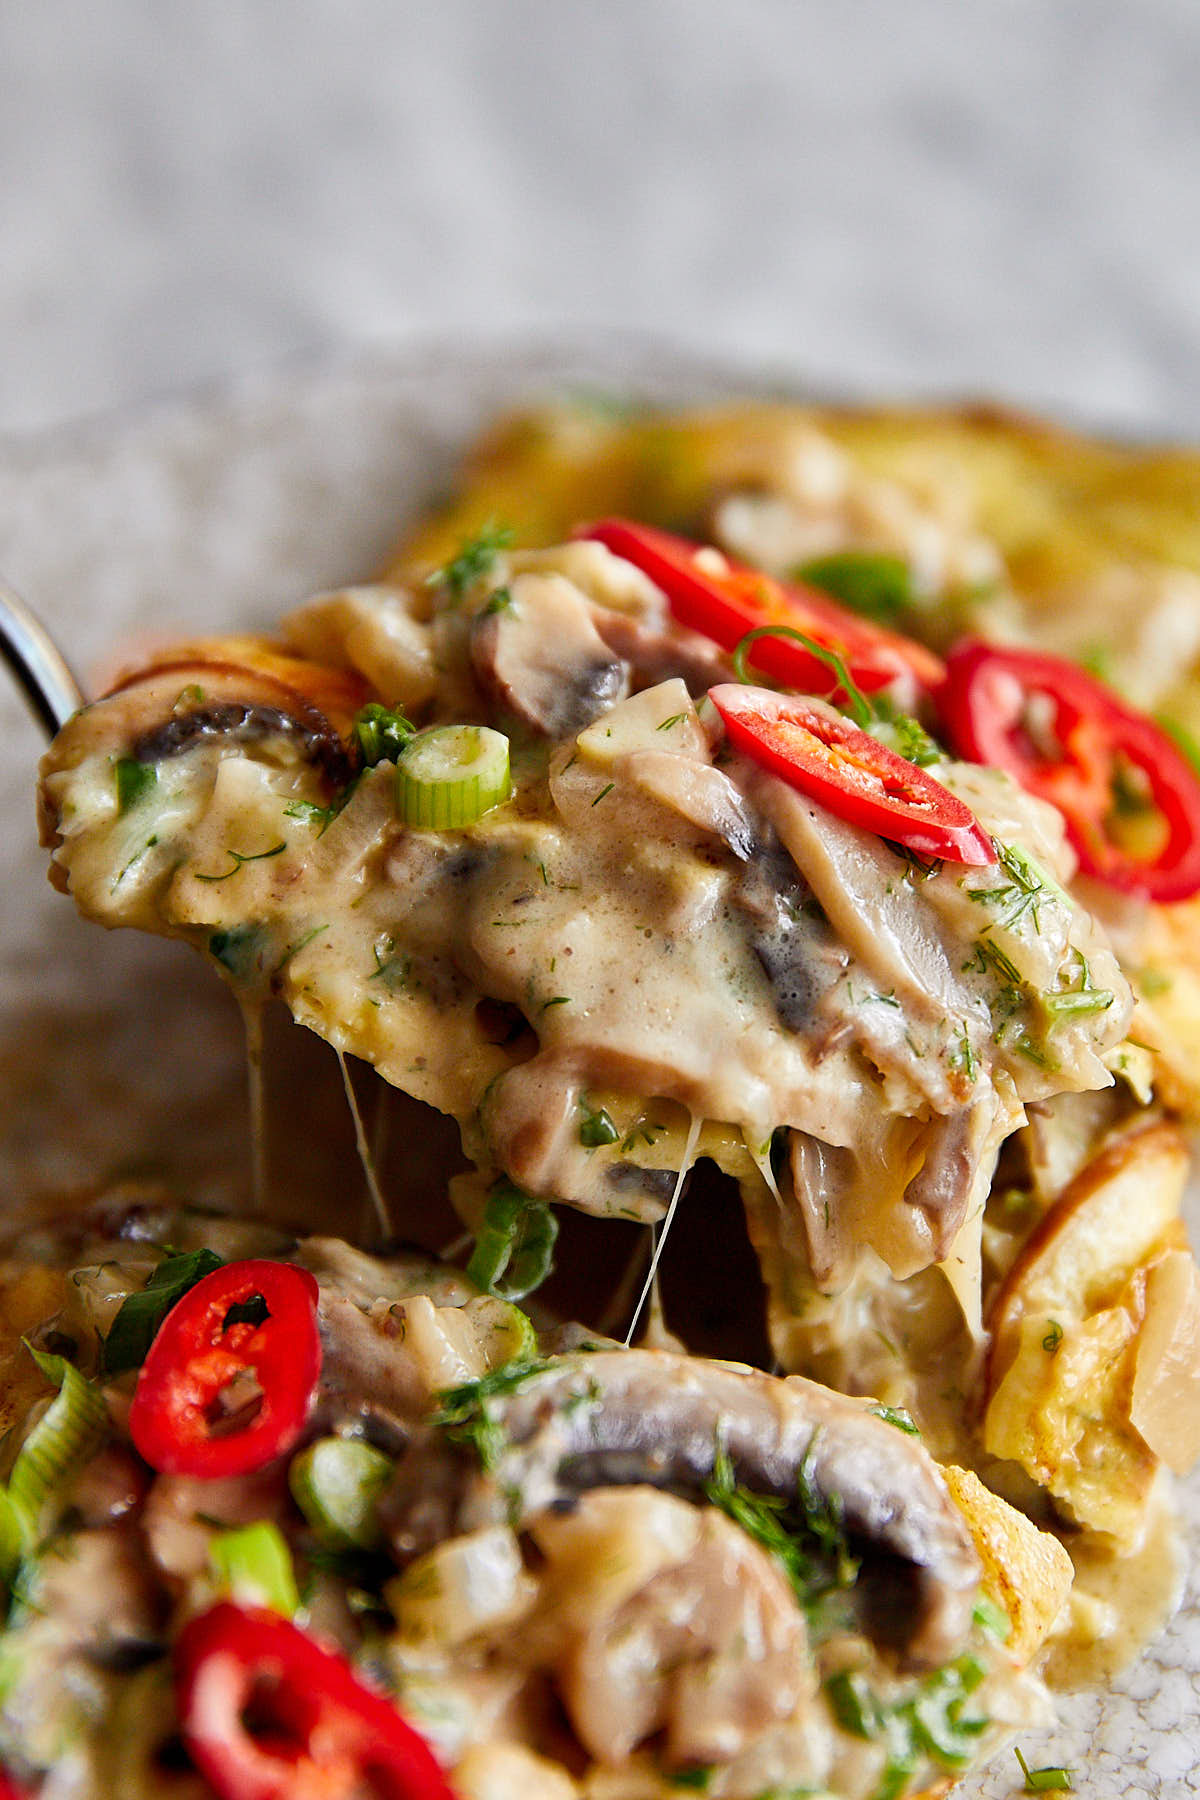 Delicious mushroom omelette with cheesy and creamy mushrooms.